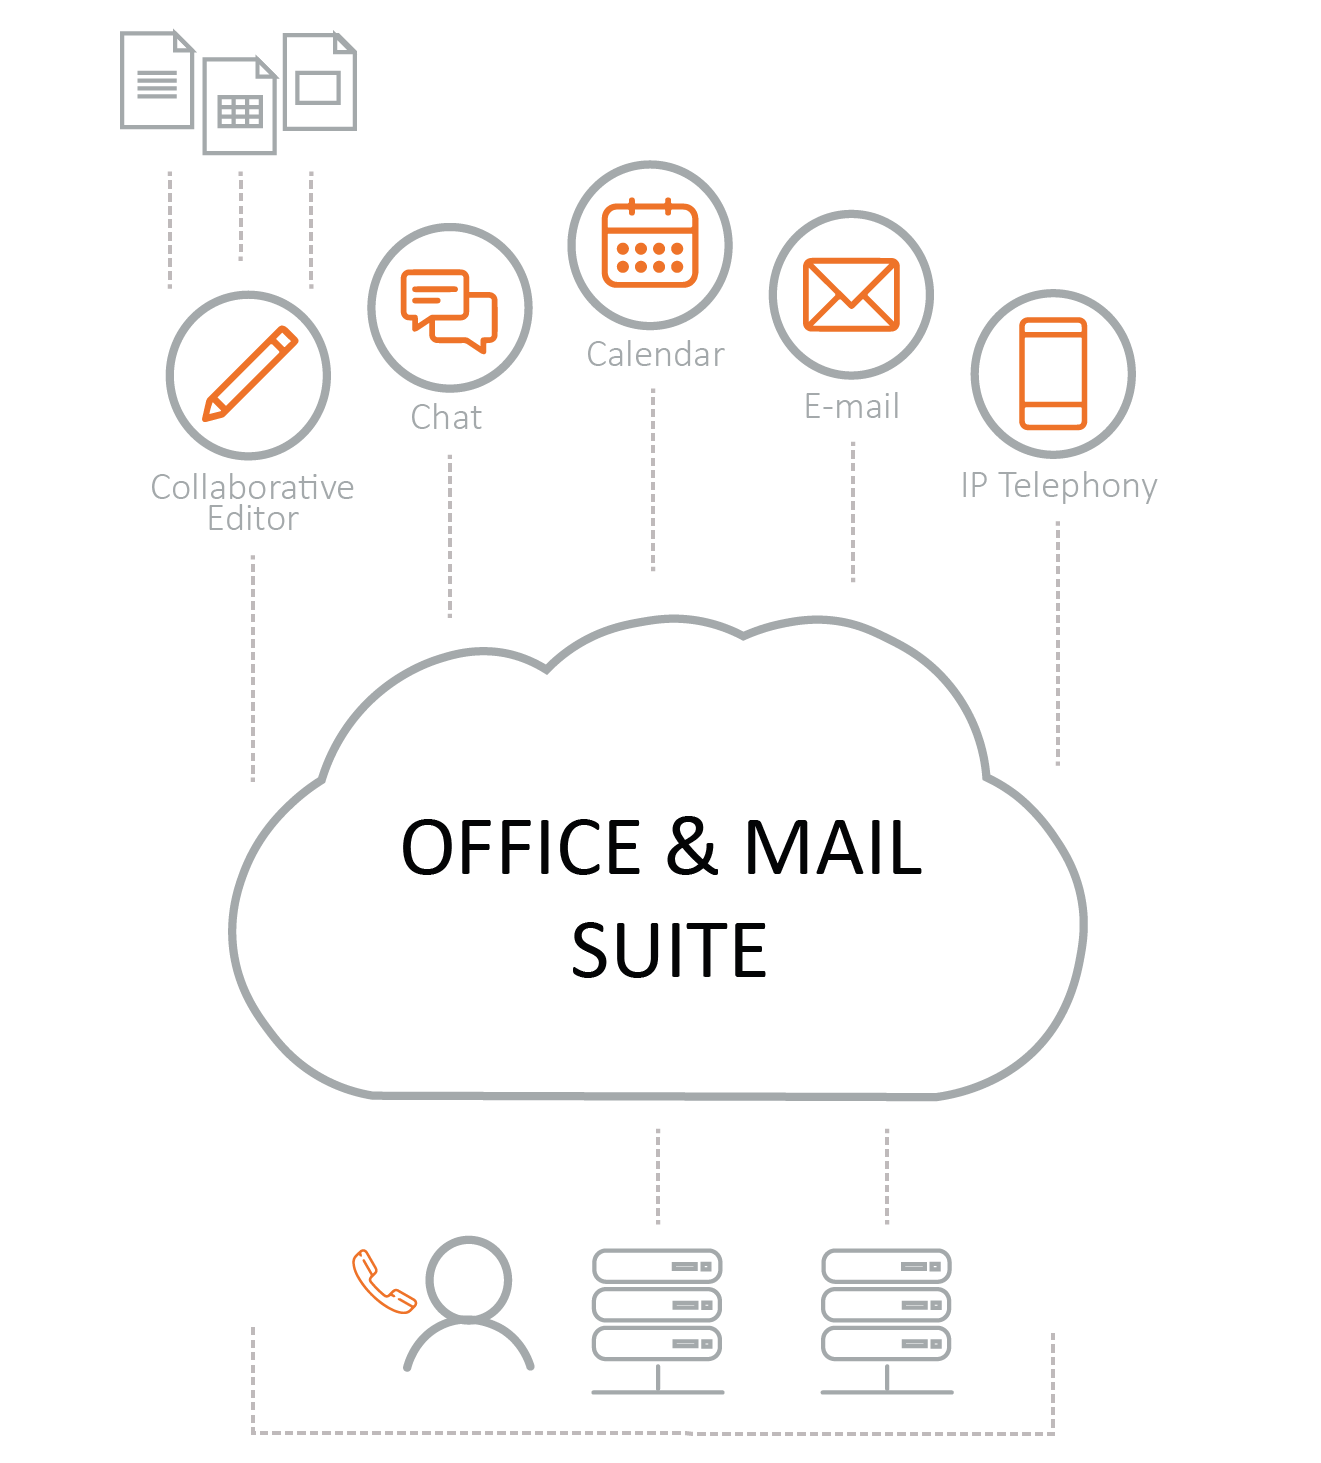 Office&Mail Suite: Collaborative Editor, Chat, Calendar, Email, IP-Telephony